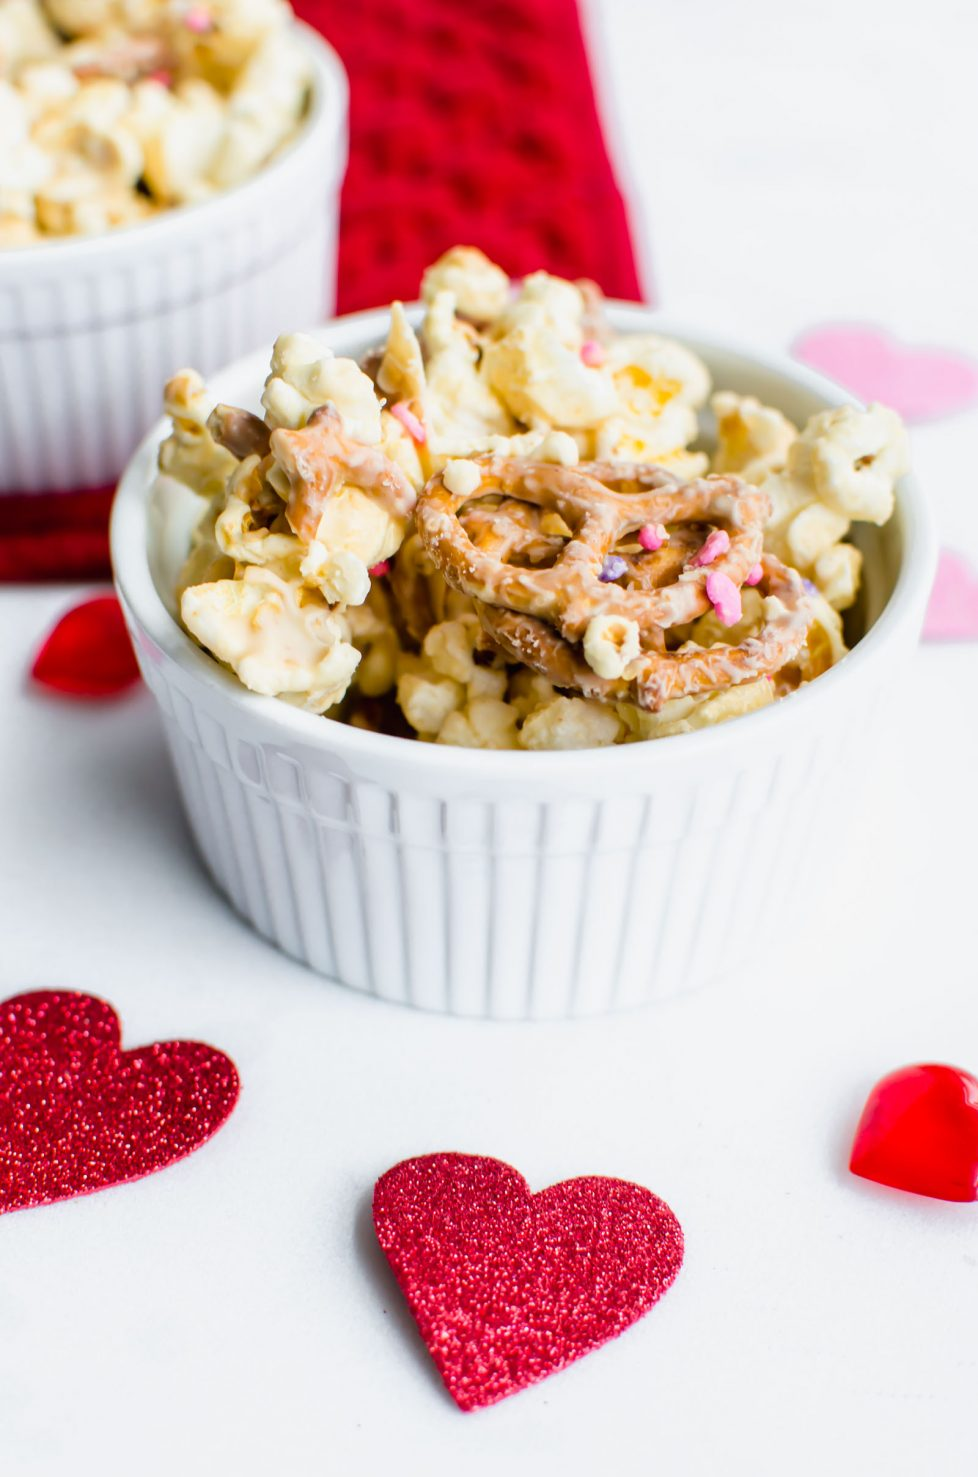 This recipe for Cupid Crack is a fun candied popcorn + pretzel snack mix that is a perfect treat to make for your Valentine! It's great to stuff in treat bags or to add to a festive gift basket.